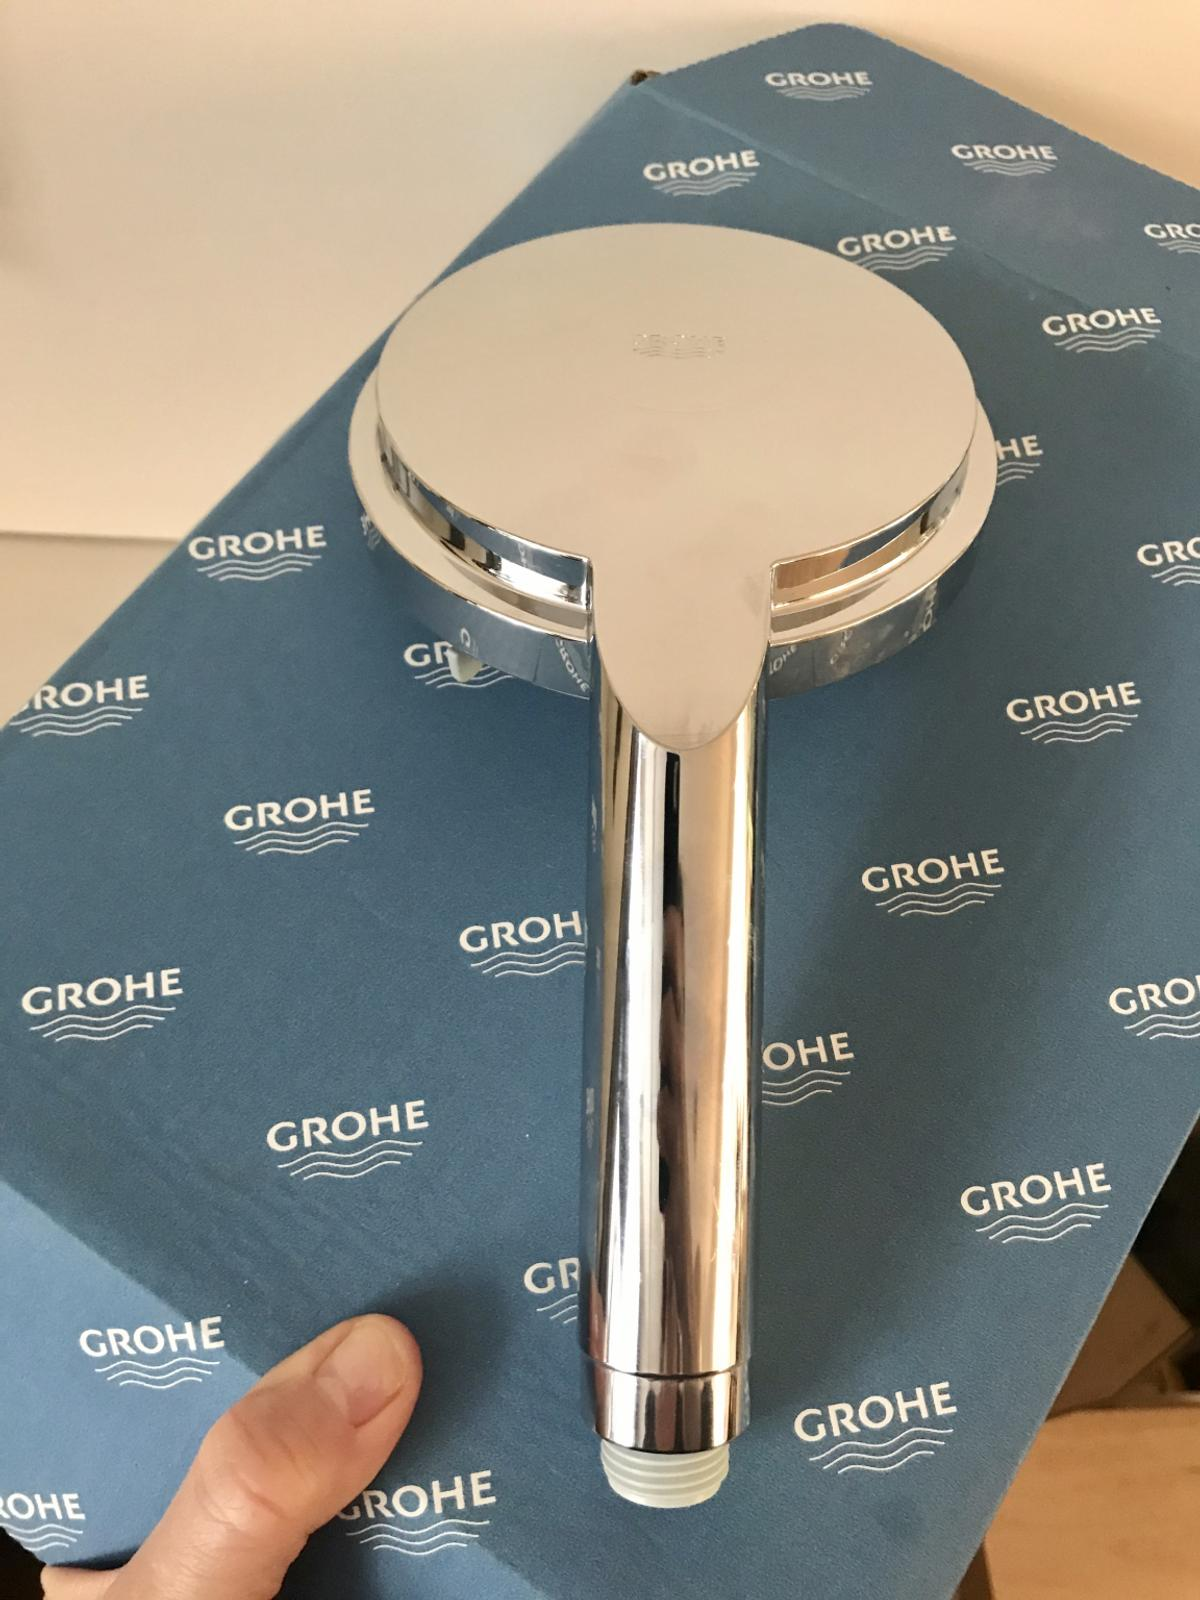 GROHE Rainshower Cosmopolitan 130mm dia handset - BRAND NEW - RRP £65    130mm diameter 3 settings including Pure, Rain and Jet Made in Germany Model: 28755000  Available to collect from N1 2LW. We're having a little online 'car boot sale' Feel free to check out our other listings!